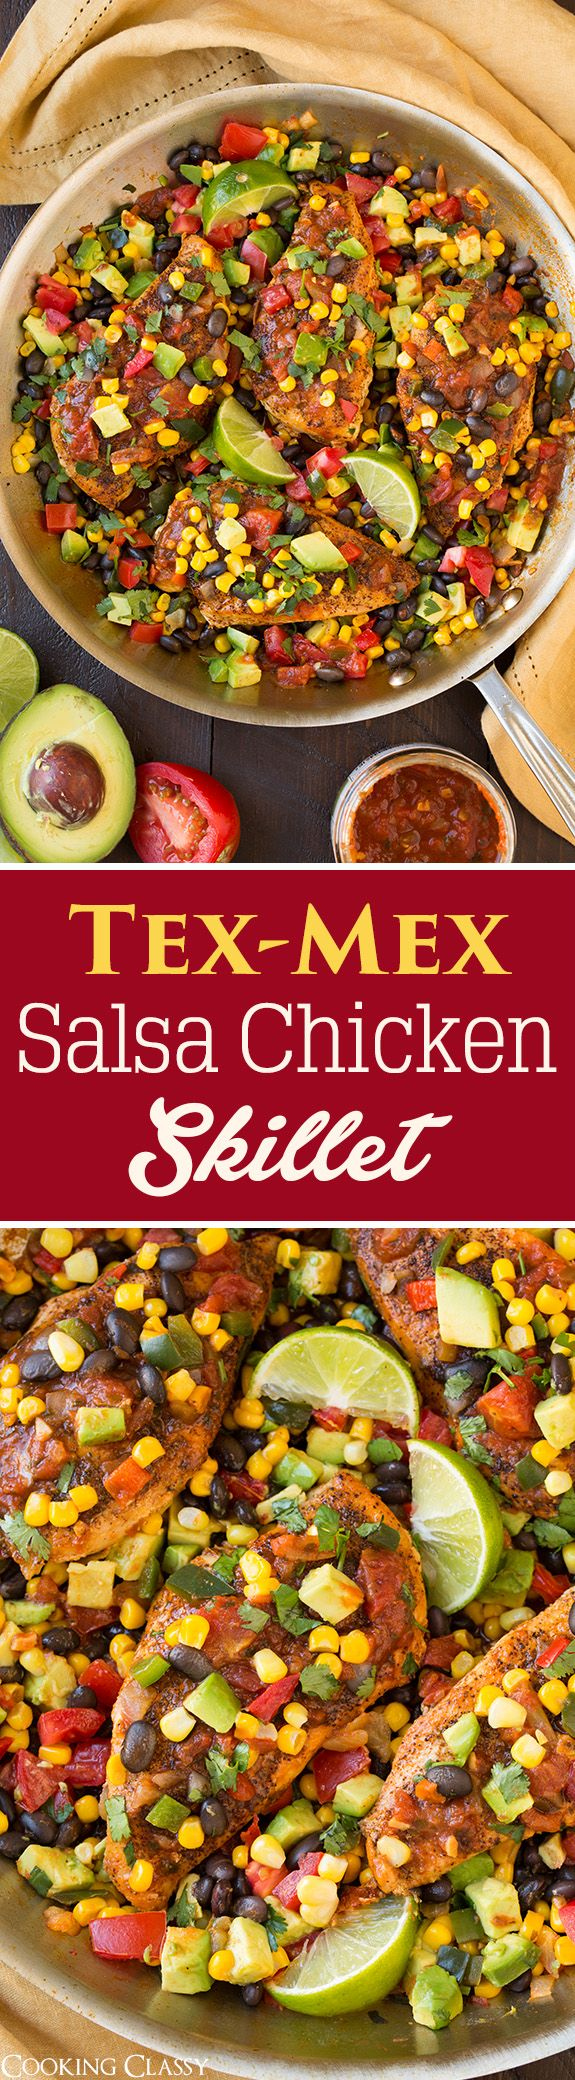 Cheesy Chicken And Salsa Skillet Recipe — Dishmaps